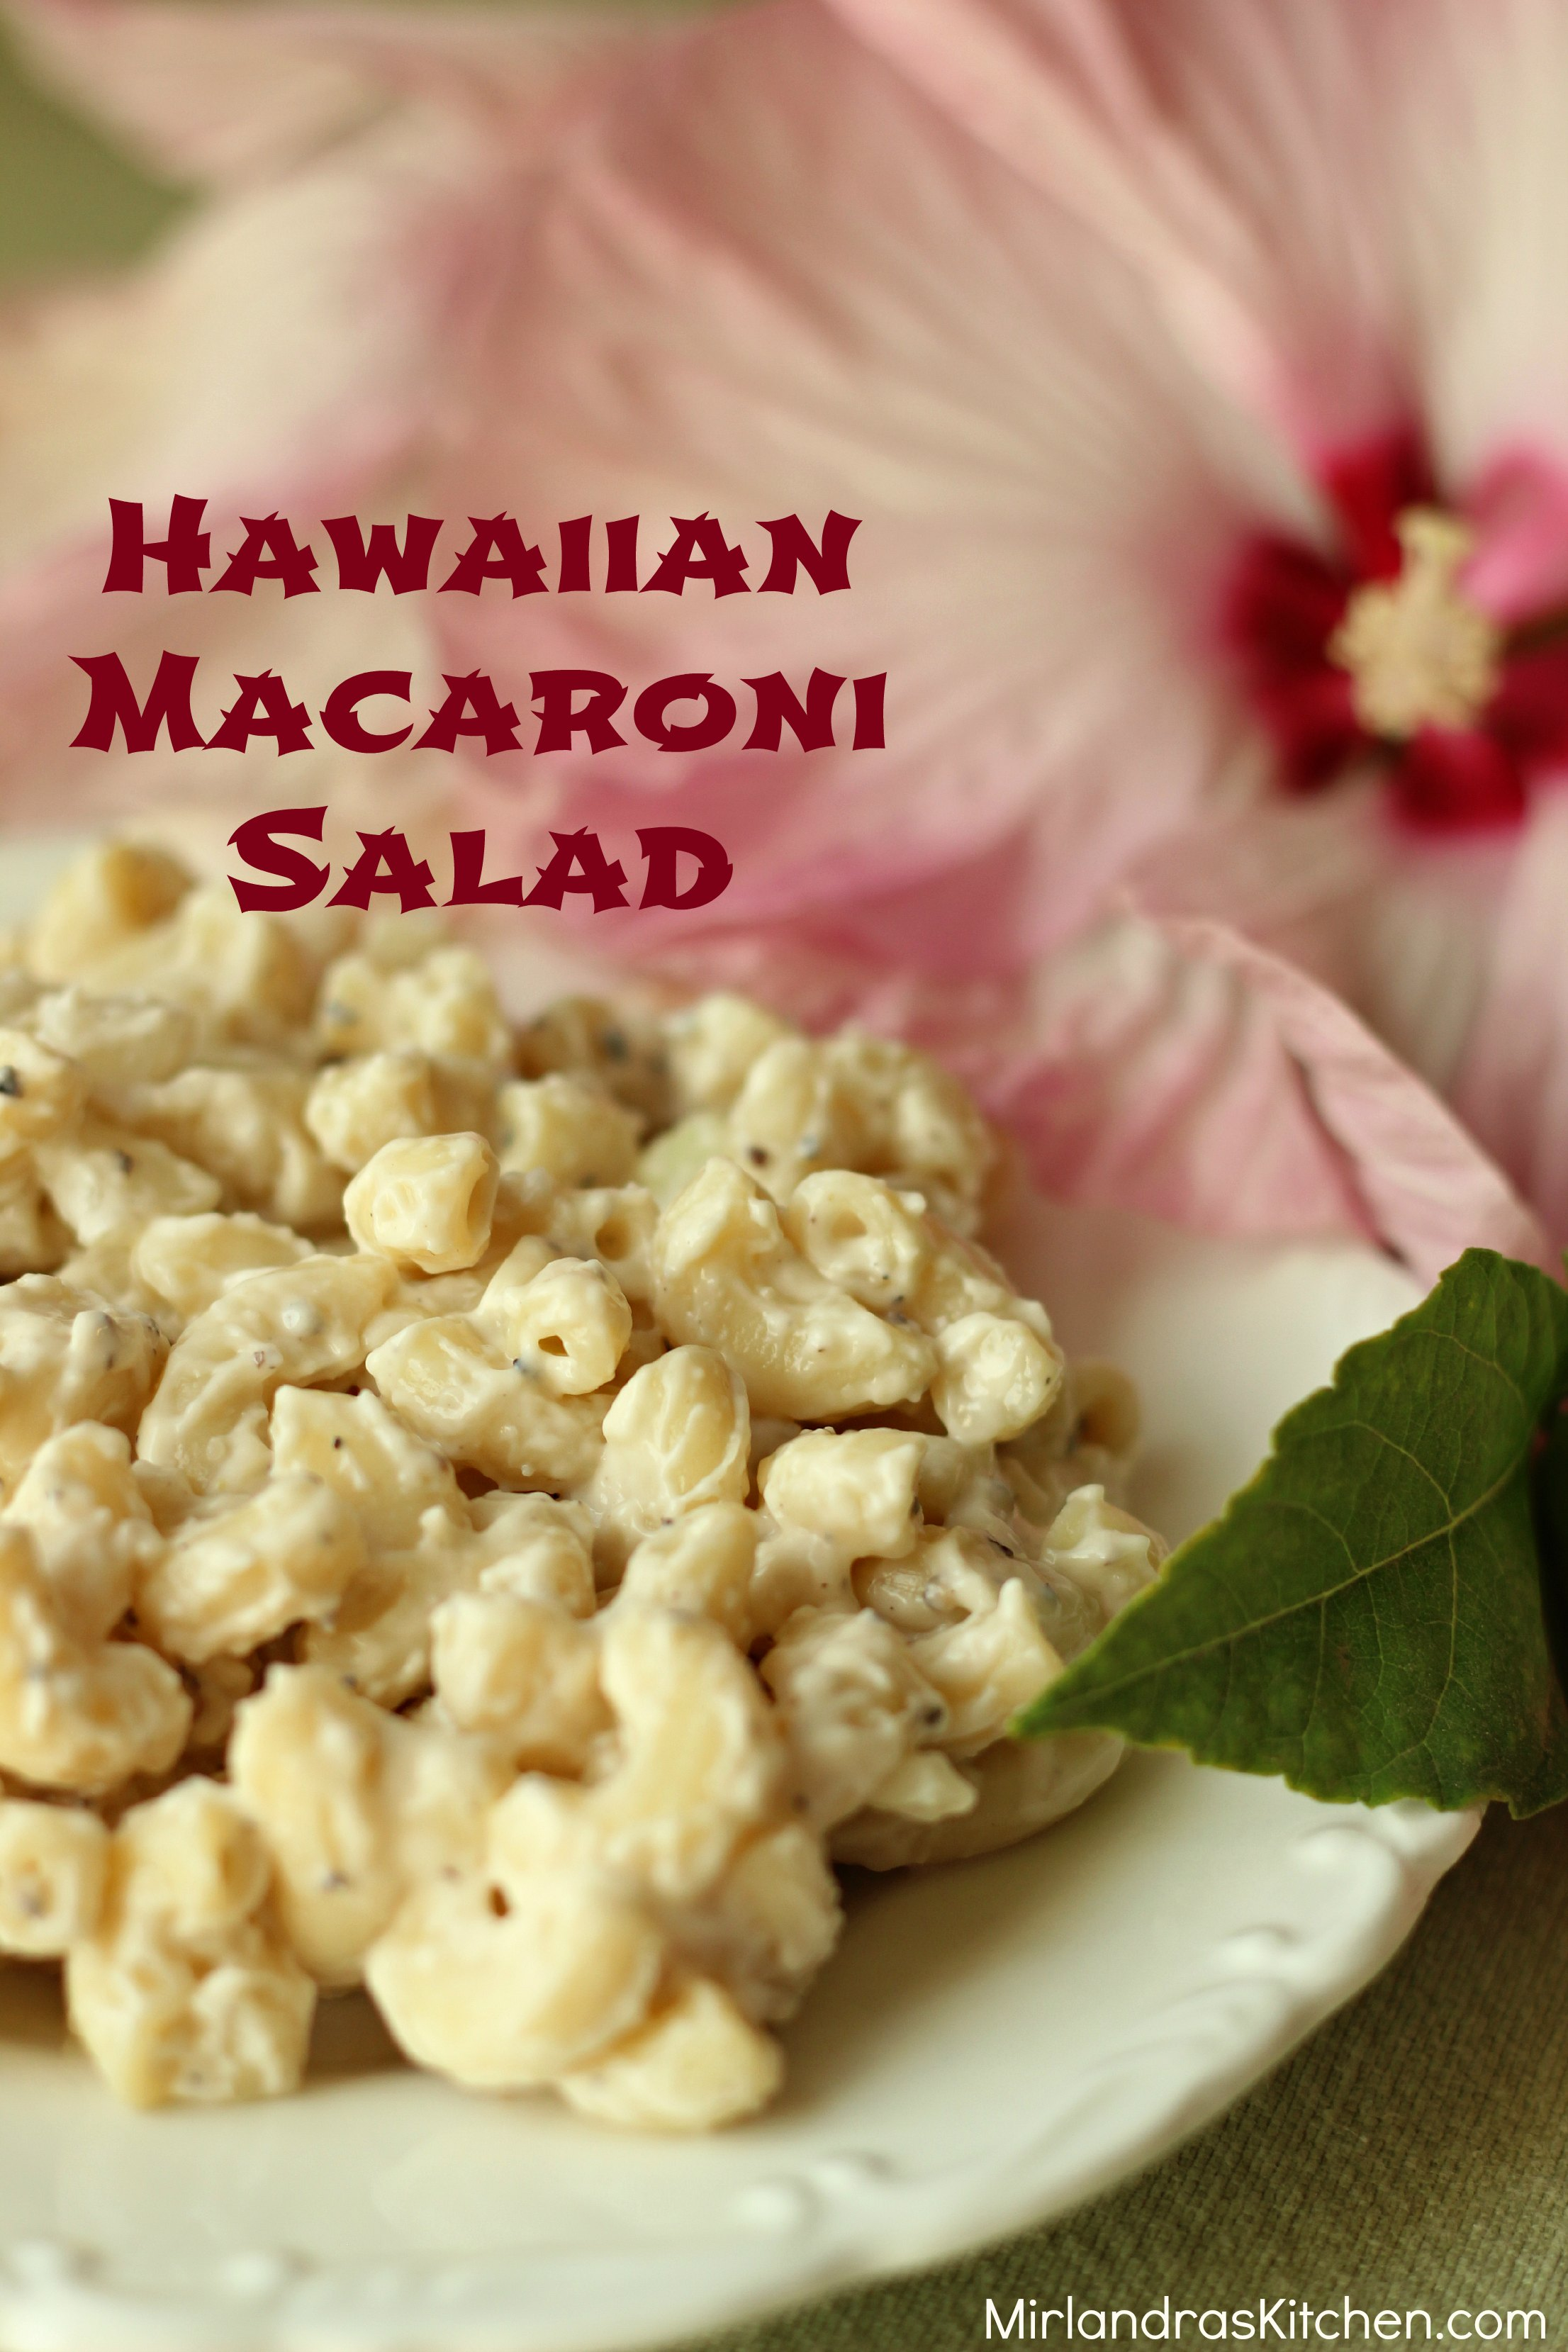 This Hawaiian macaroni salad is one of our favorite dinner side dishes of all time.  It is cool and creamy, the perfect side for BBQ and Asian food.